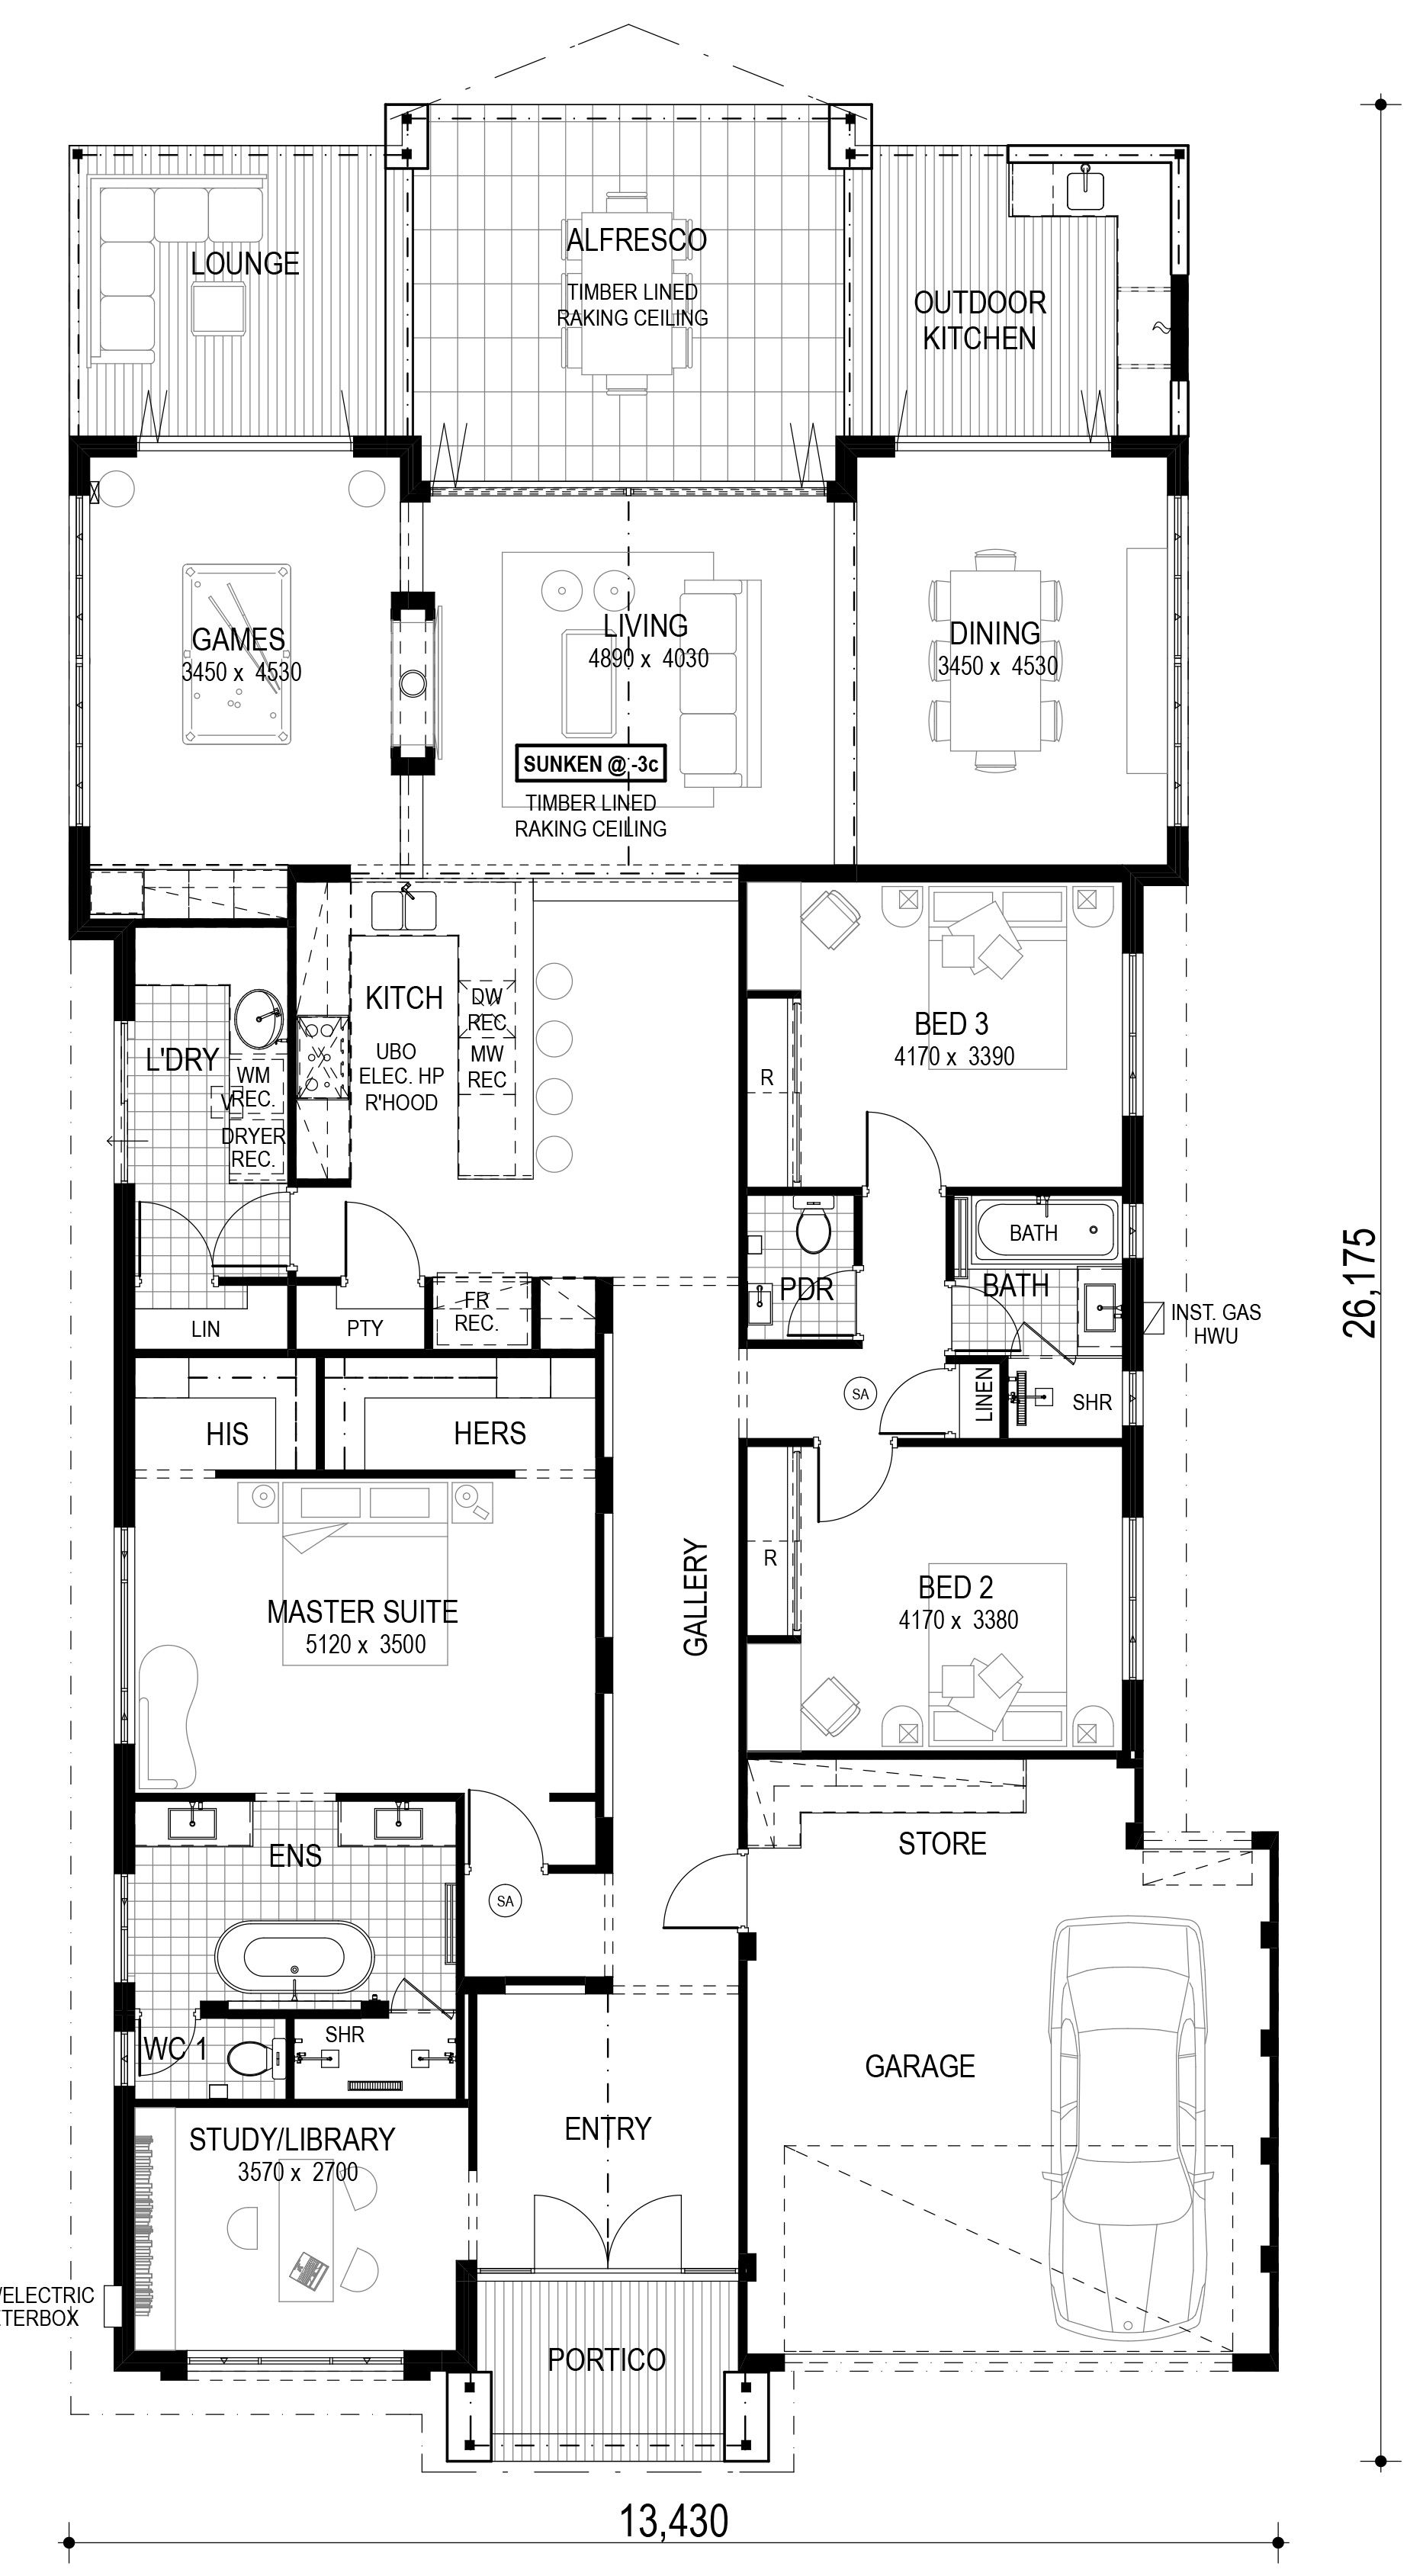 Single Storey House Design The Orlando A Generous Size Of 278 Sq M 15 95 X 22 43m De Single Storey House Plans French Country House Plans One Storey House